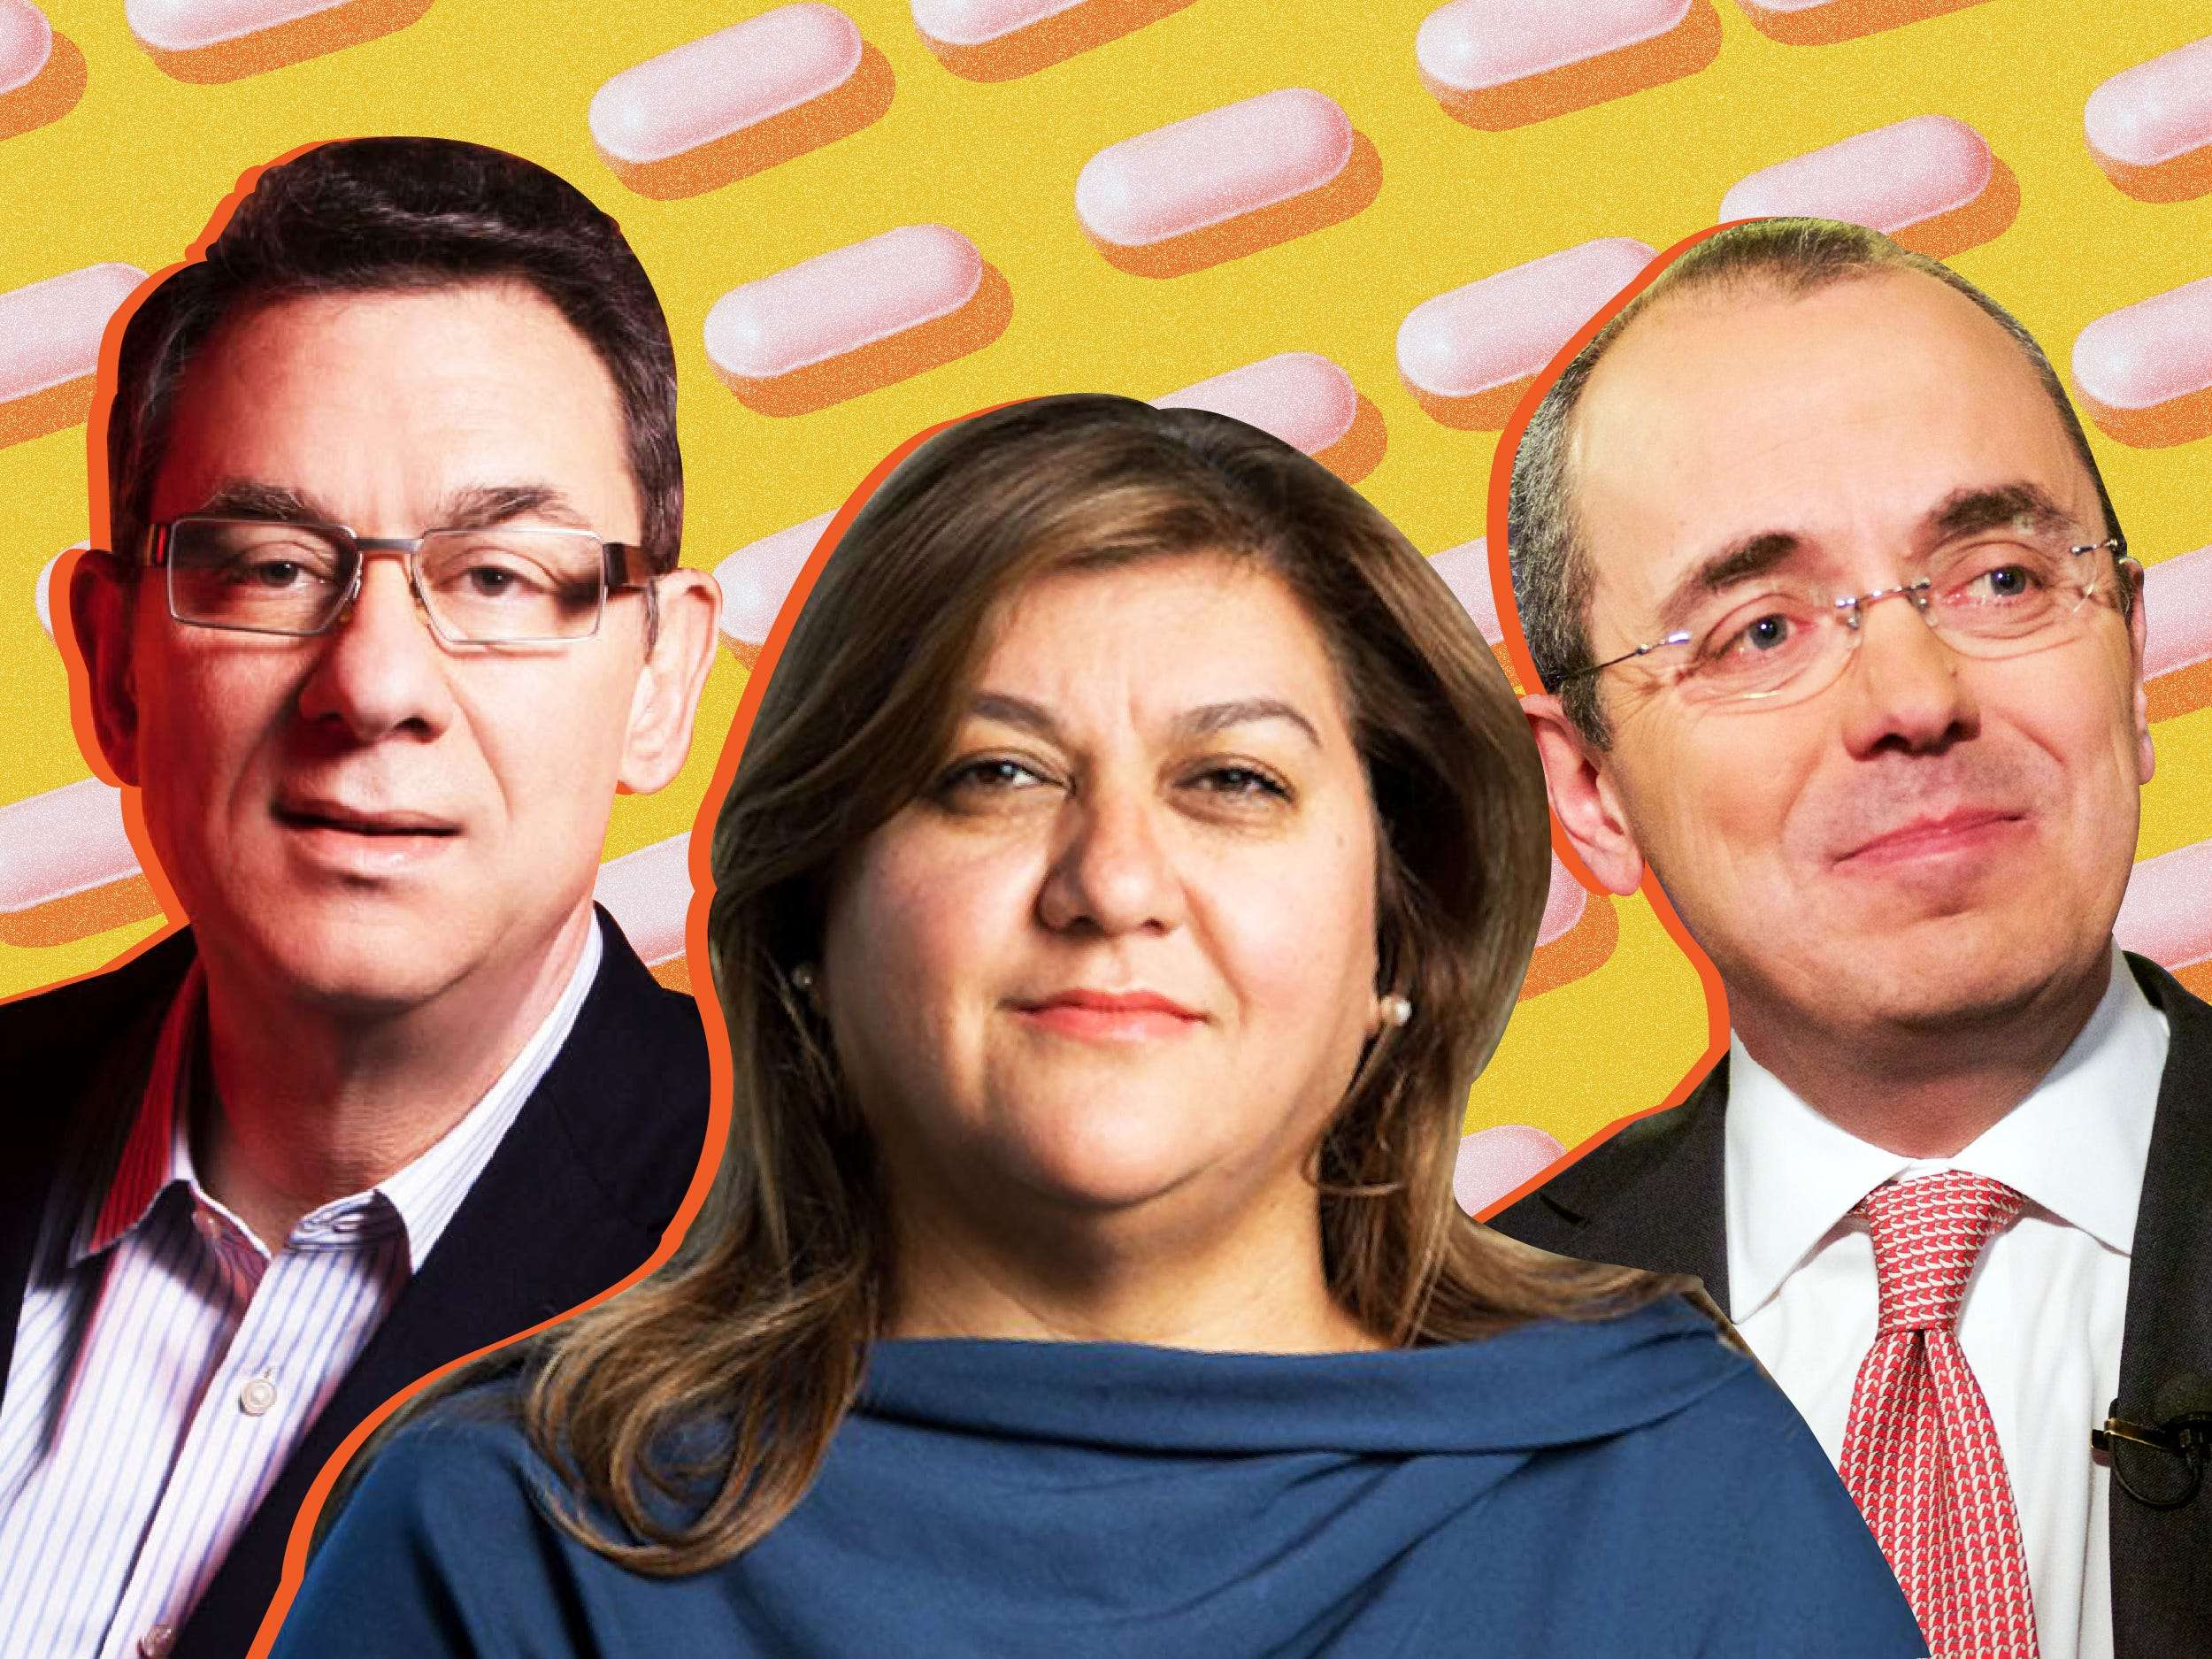 INSIDE BIOTECH: See the drug companies that are growing the fastest and pay workers the most